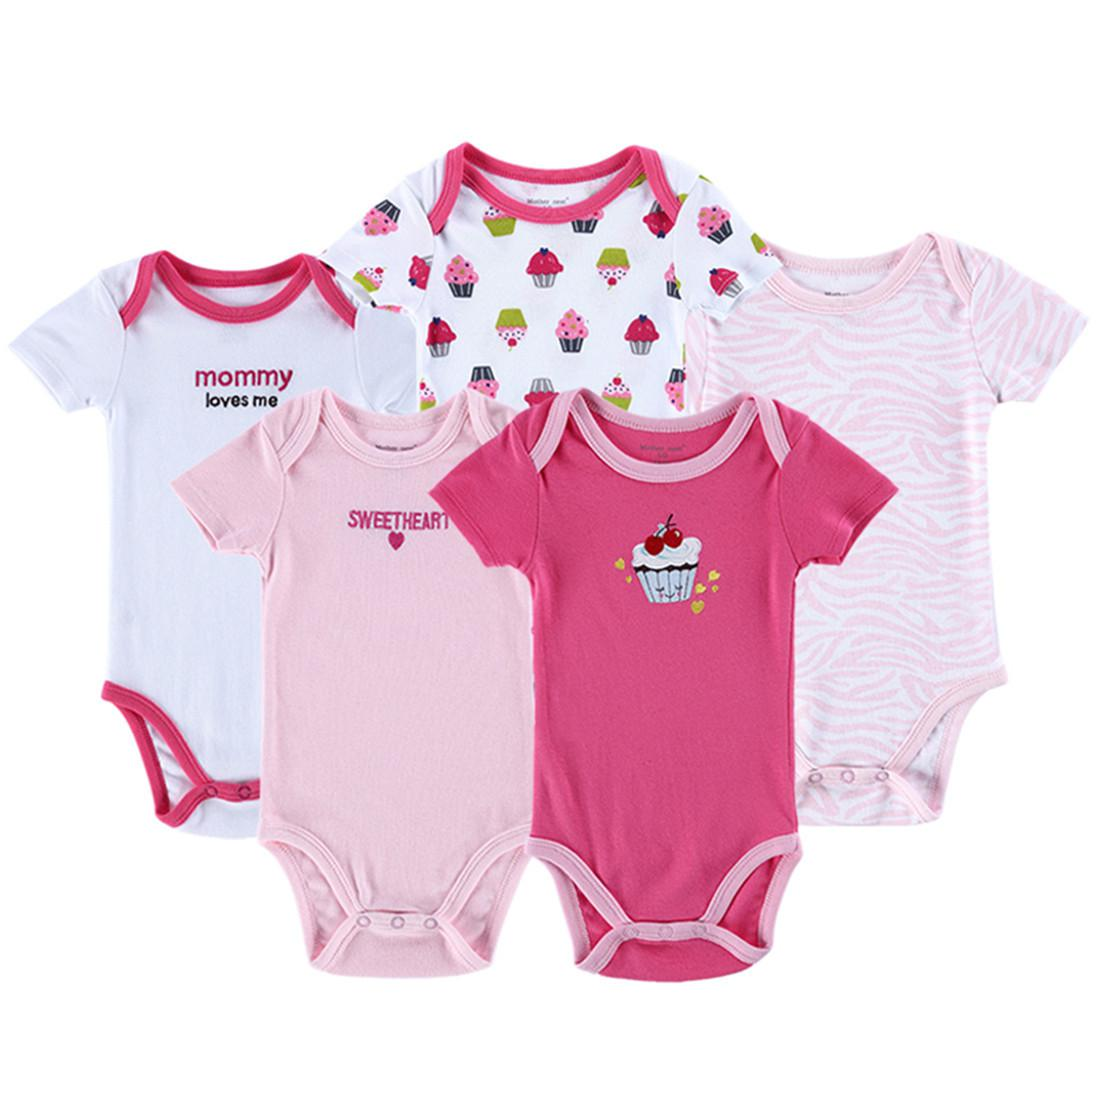 affordable baby clothes - Kids Clothes Zone